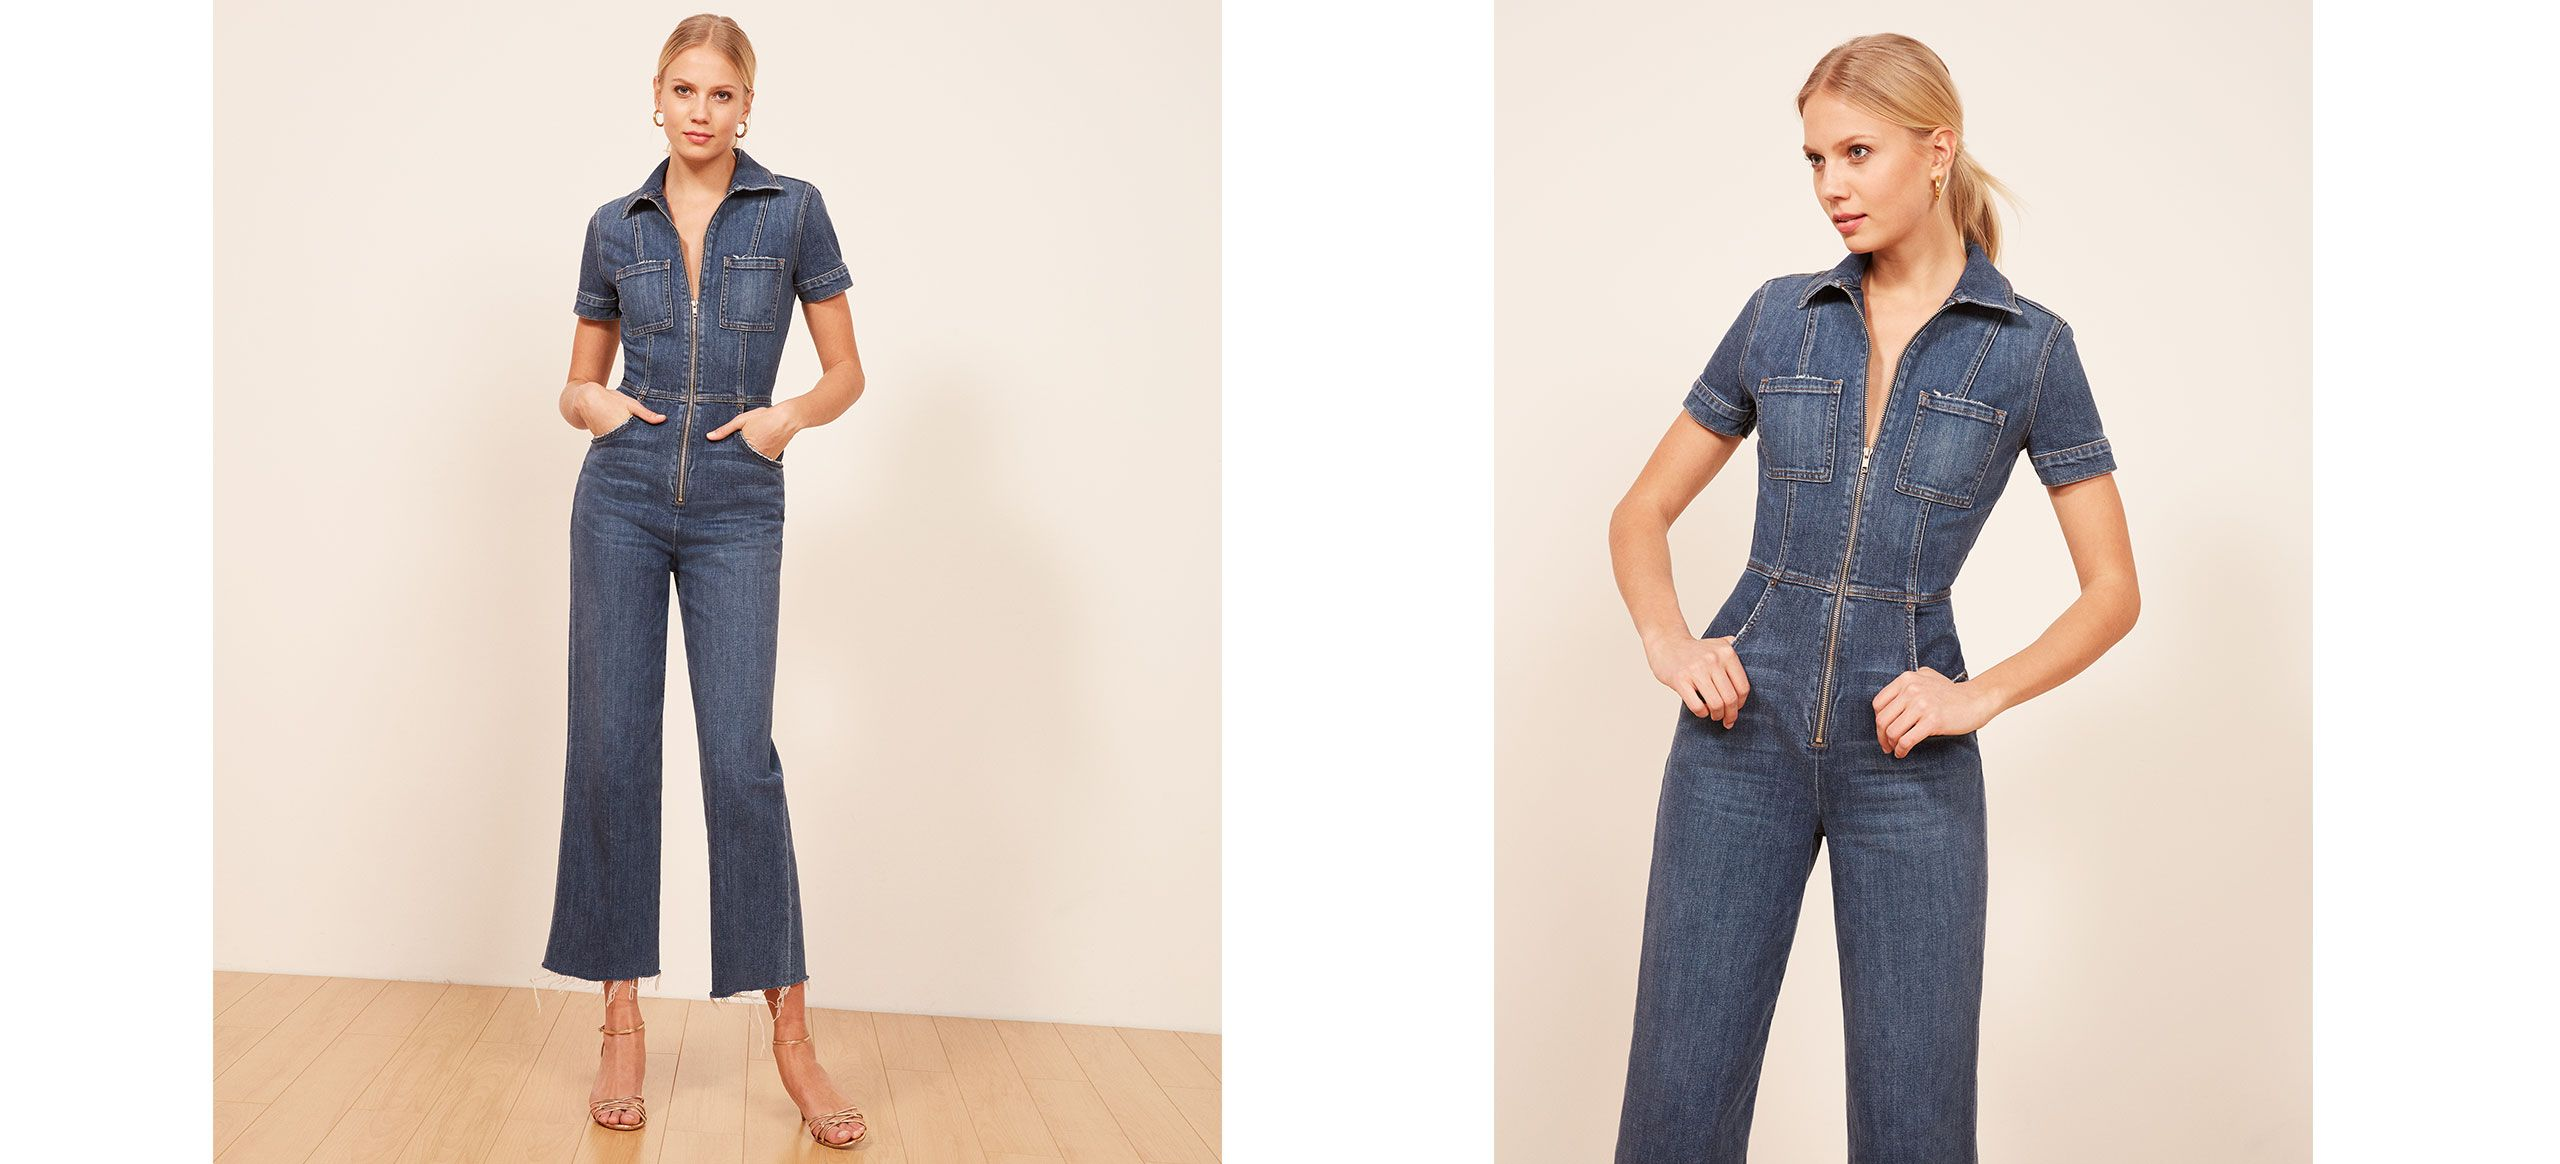 910be97d95f9 The Georgia Jumpsuit is part of the Reformation Jeans collection. This is a  slightly cropped